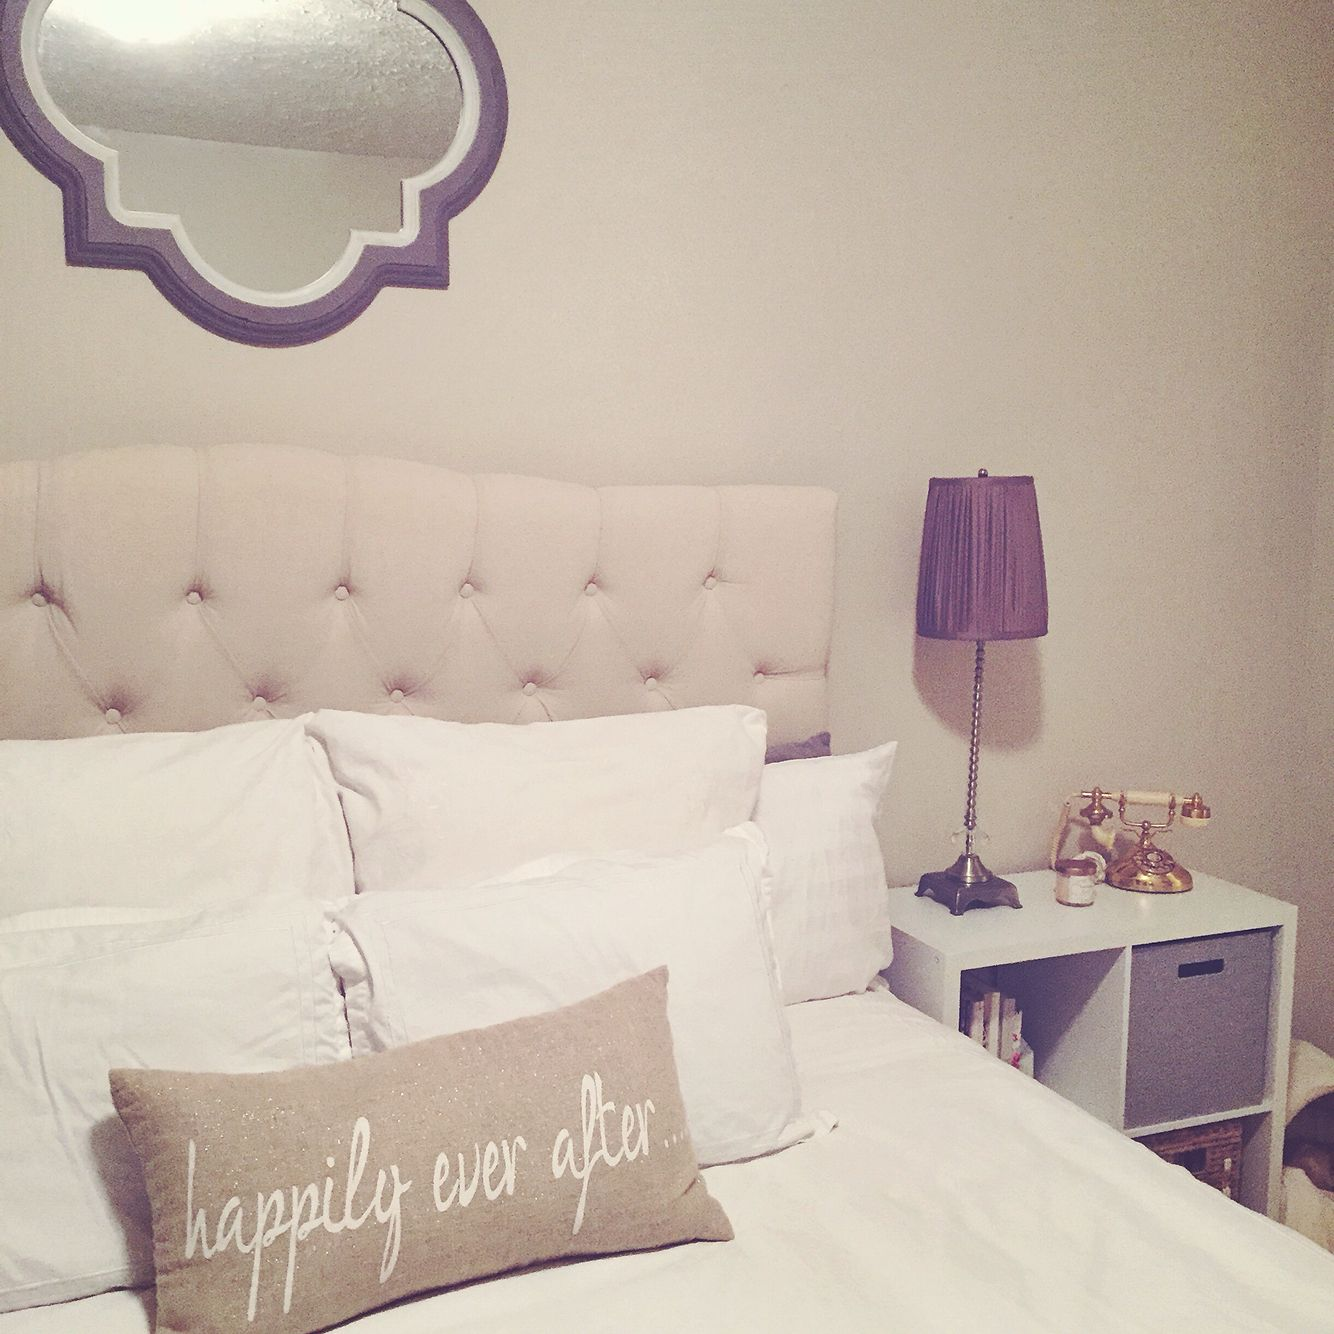 Tufted headboard, happily ever after, above the bed mirror